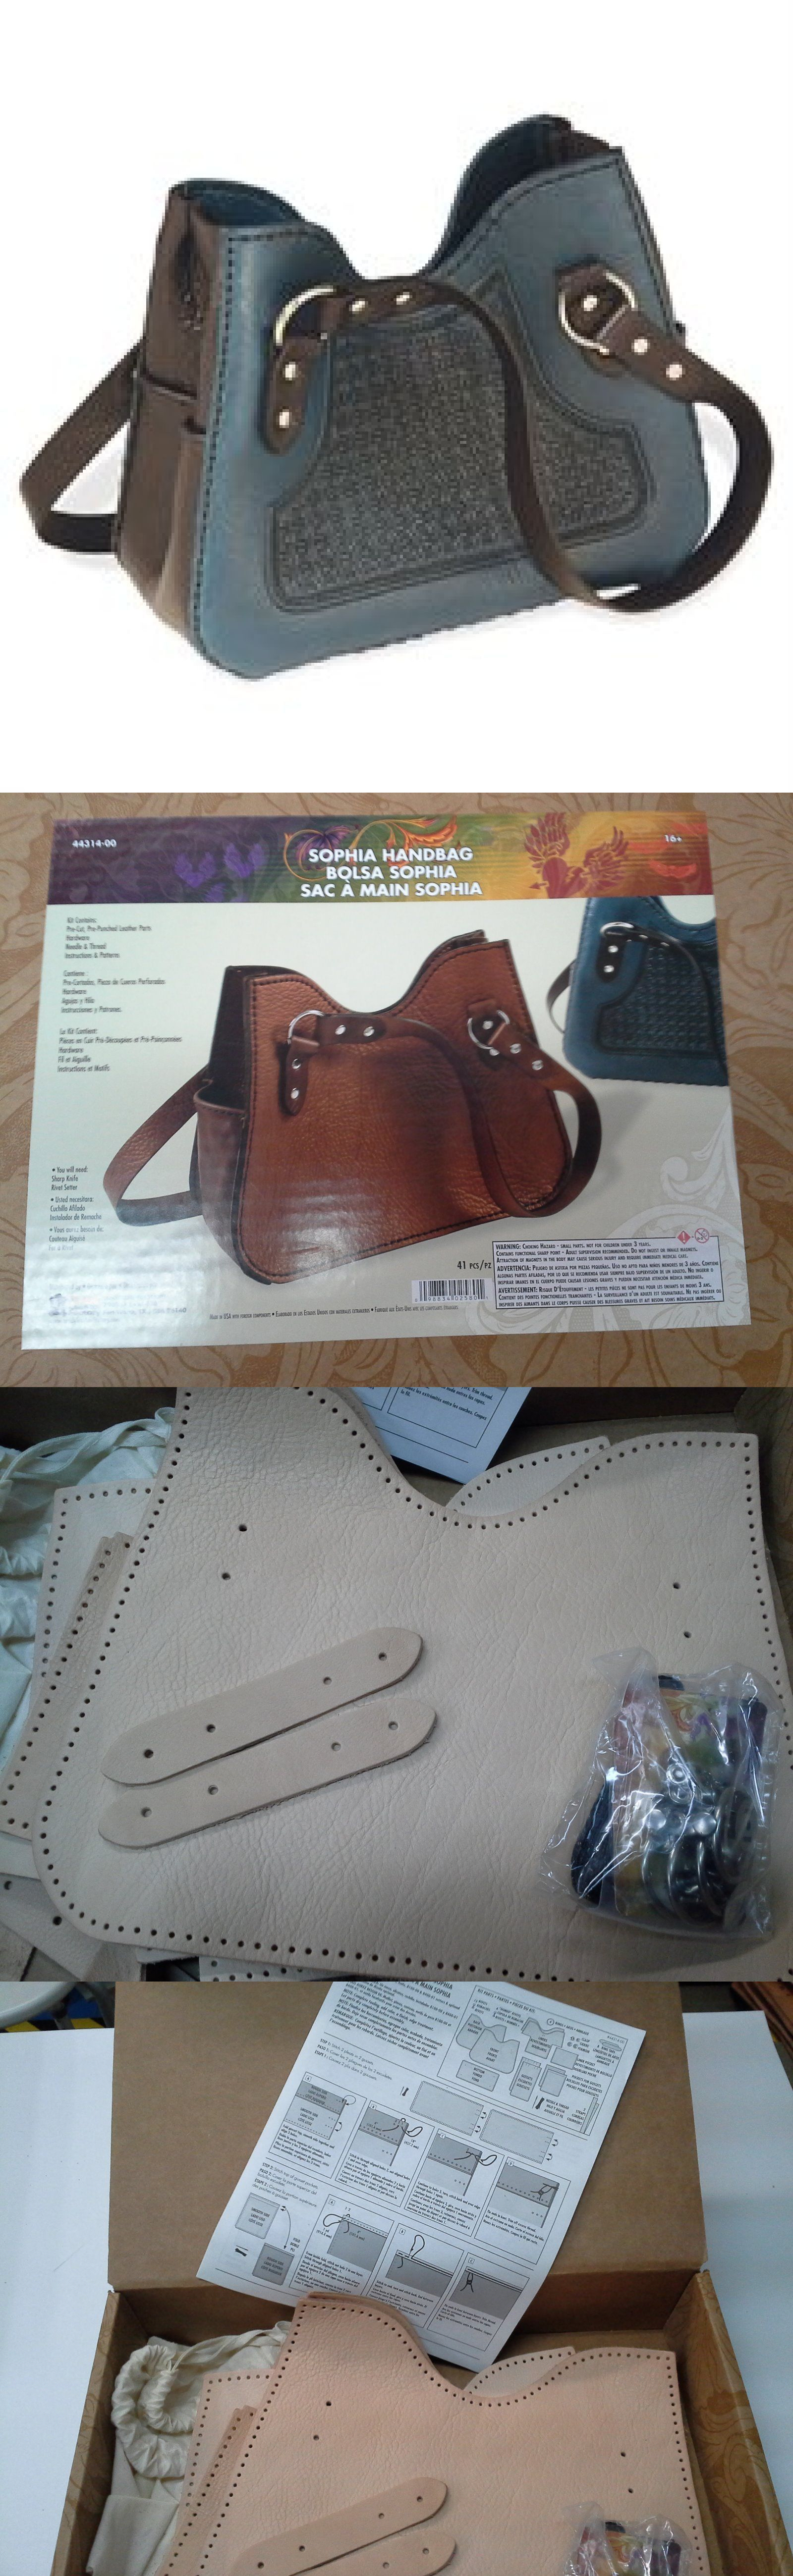 Other Leathercraft Supplies 146334 Sophia Handbag Kit Tandy Leather 44314 00 Free Priority Shipping To Us It Now Only 86 99 On Ebay